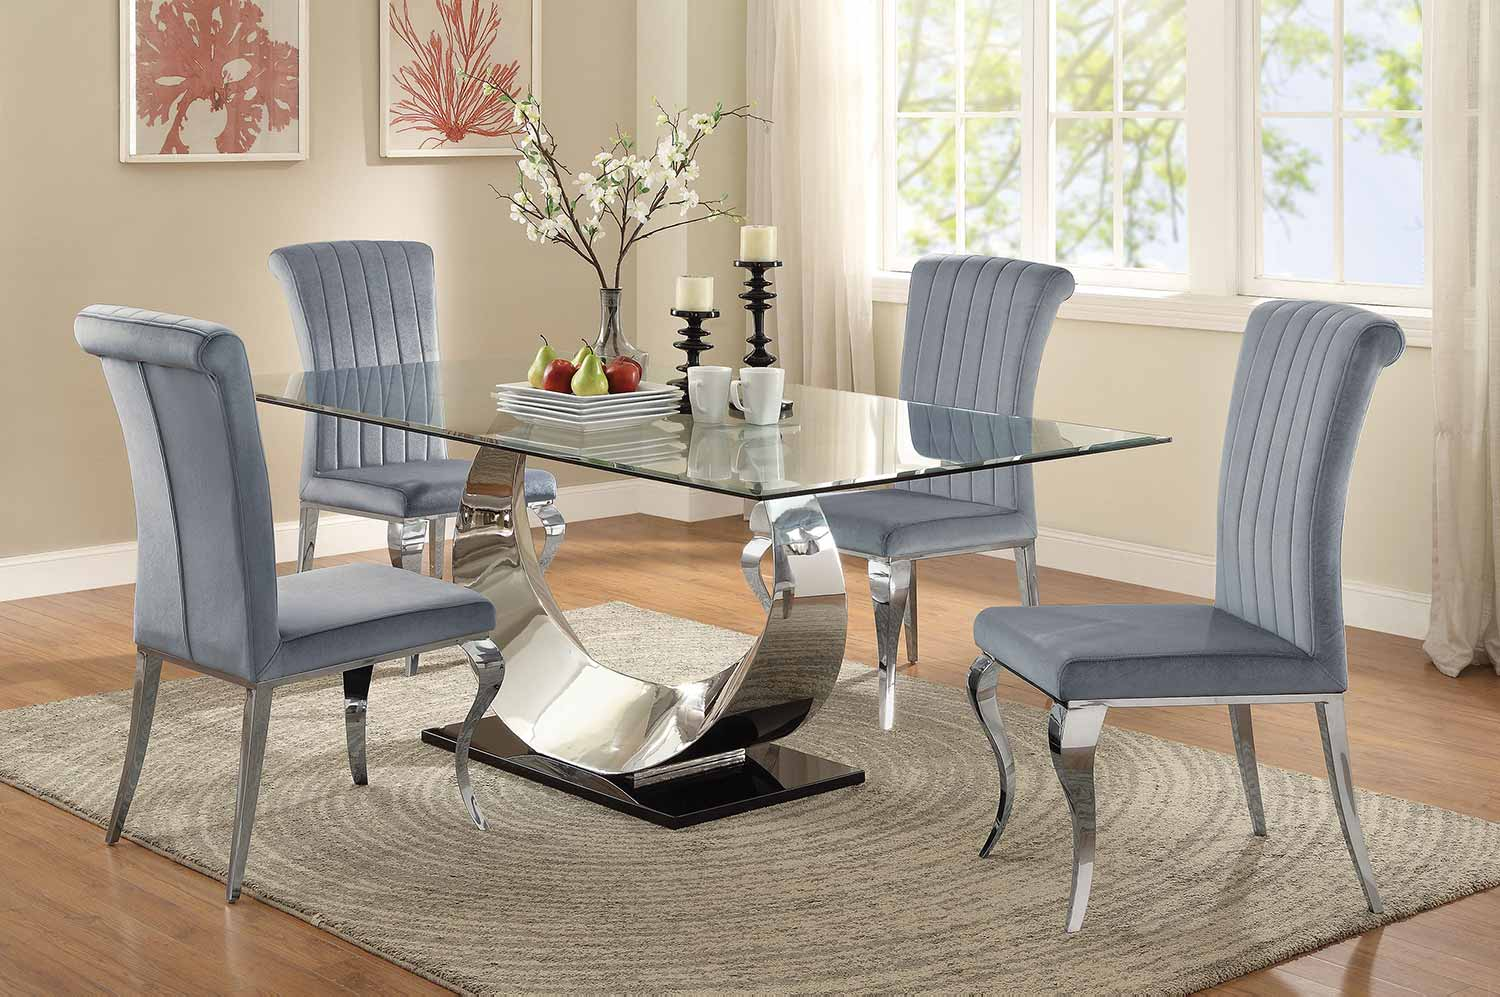 Genial Coaster Manessier Rectangular Glass Dining Set   Chrome